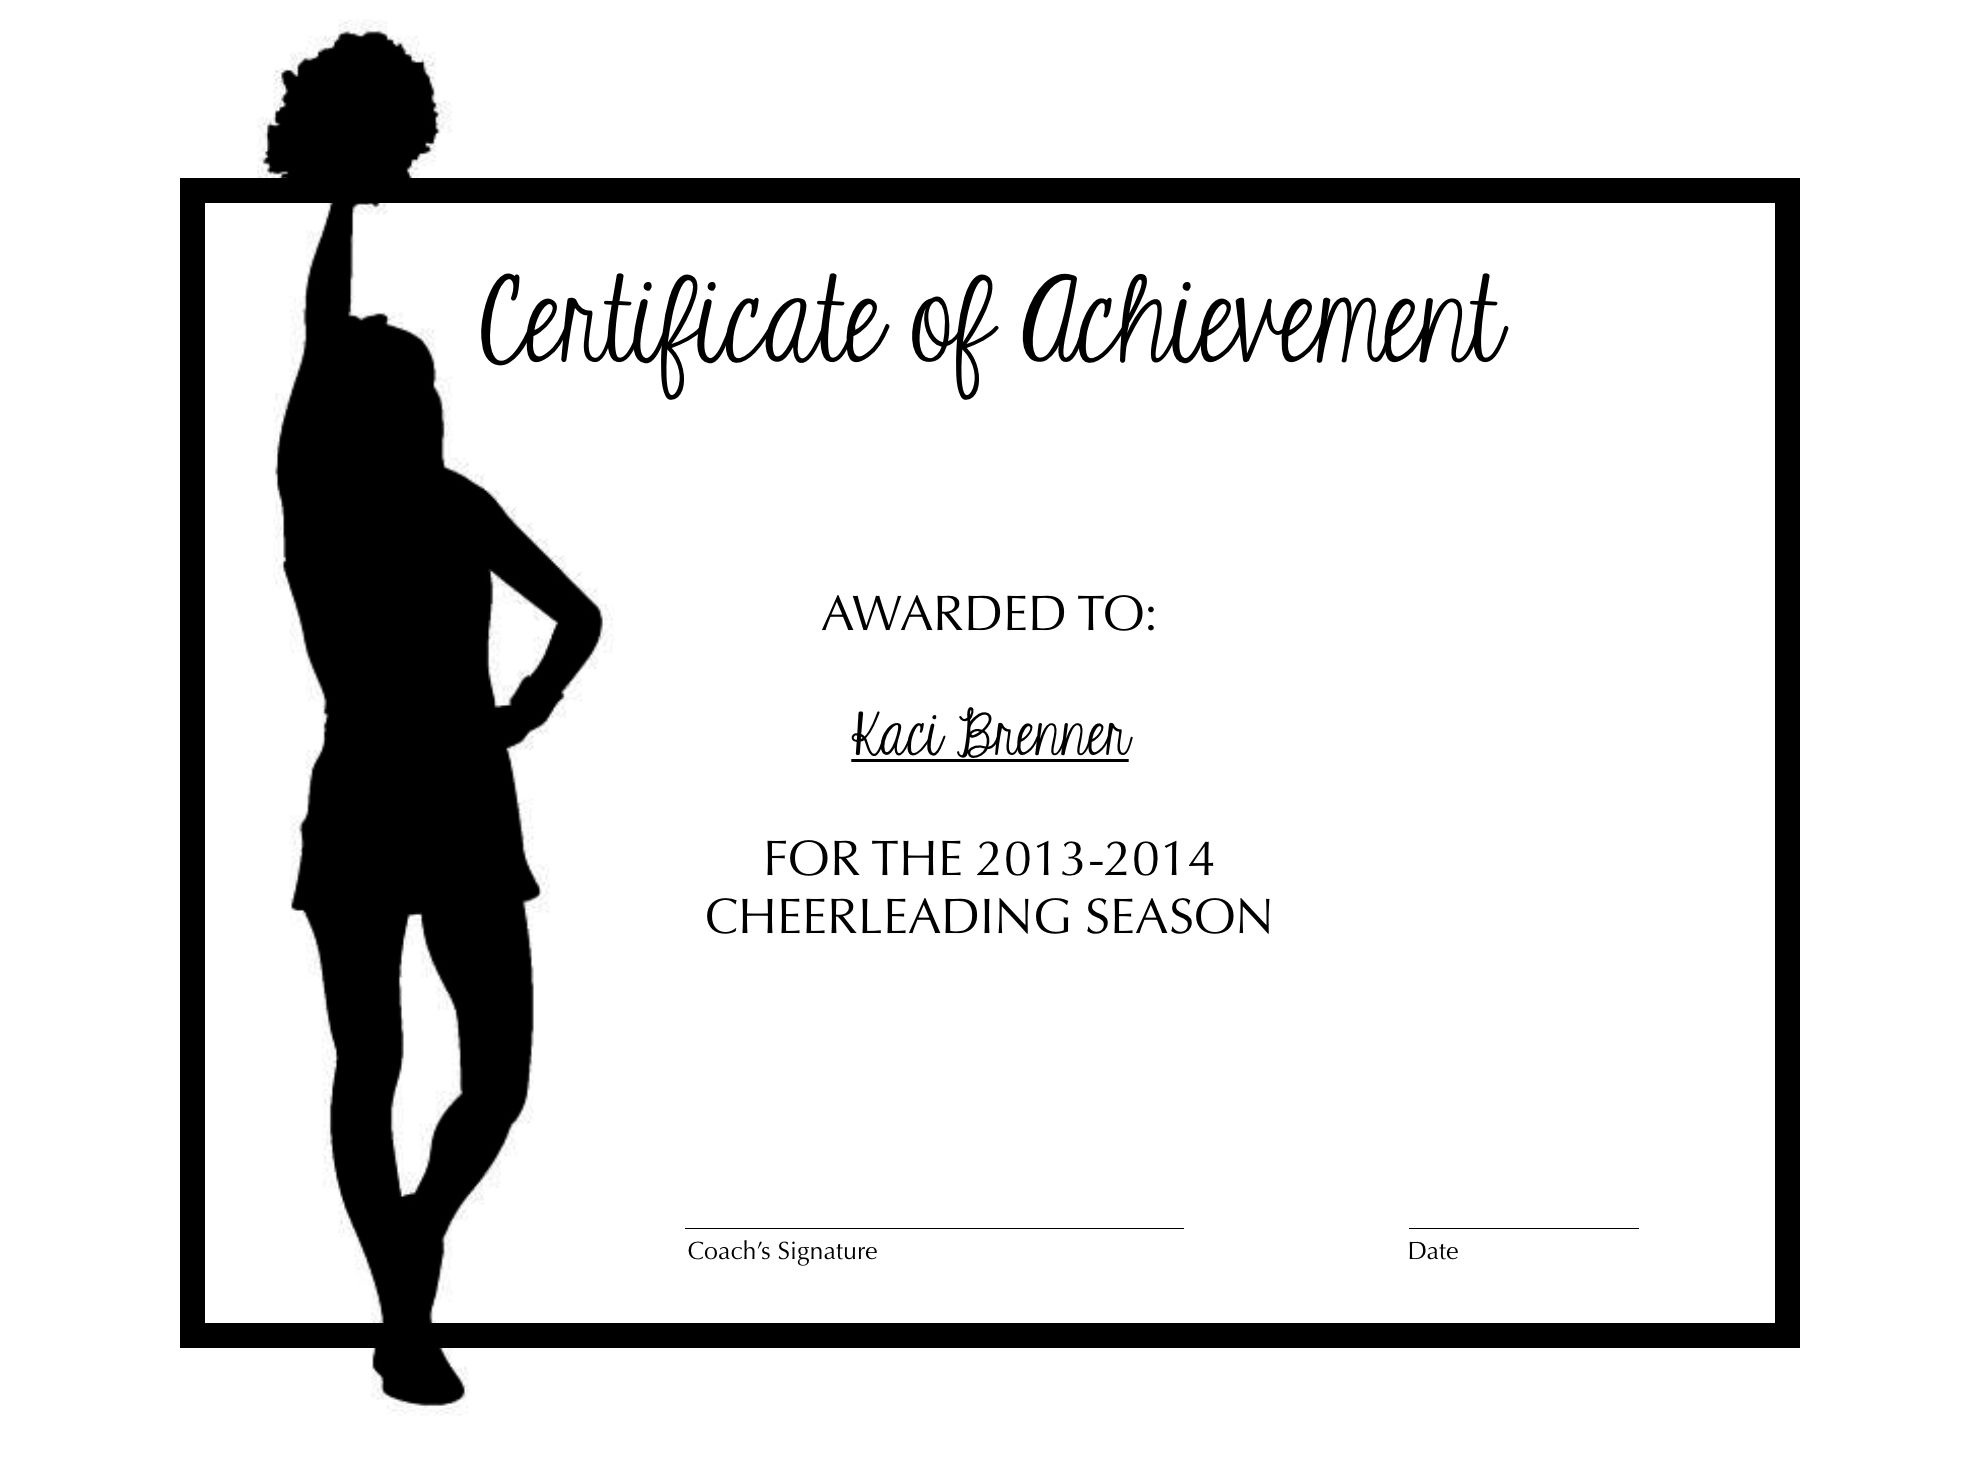 Cheerleading certificate of achievement cheer pinterest cheerleading certificate of achievement yadclub Image collections